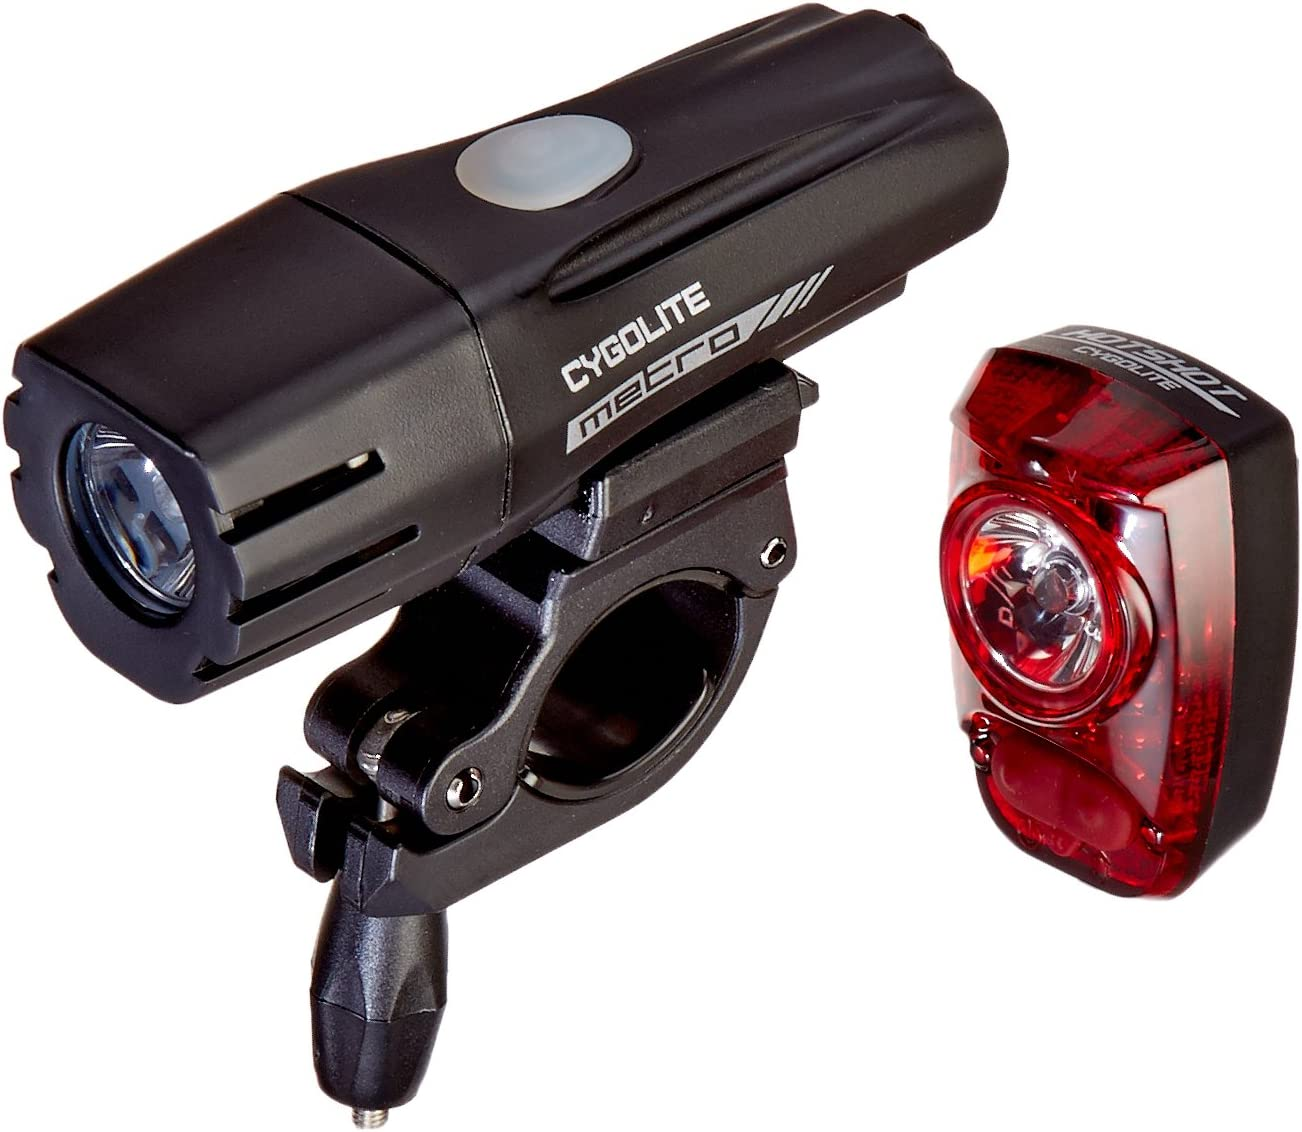 Cygolite Metro 360 Hotshot 2W Combo Light Set